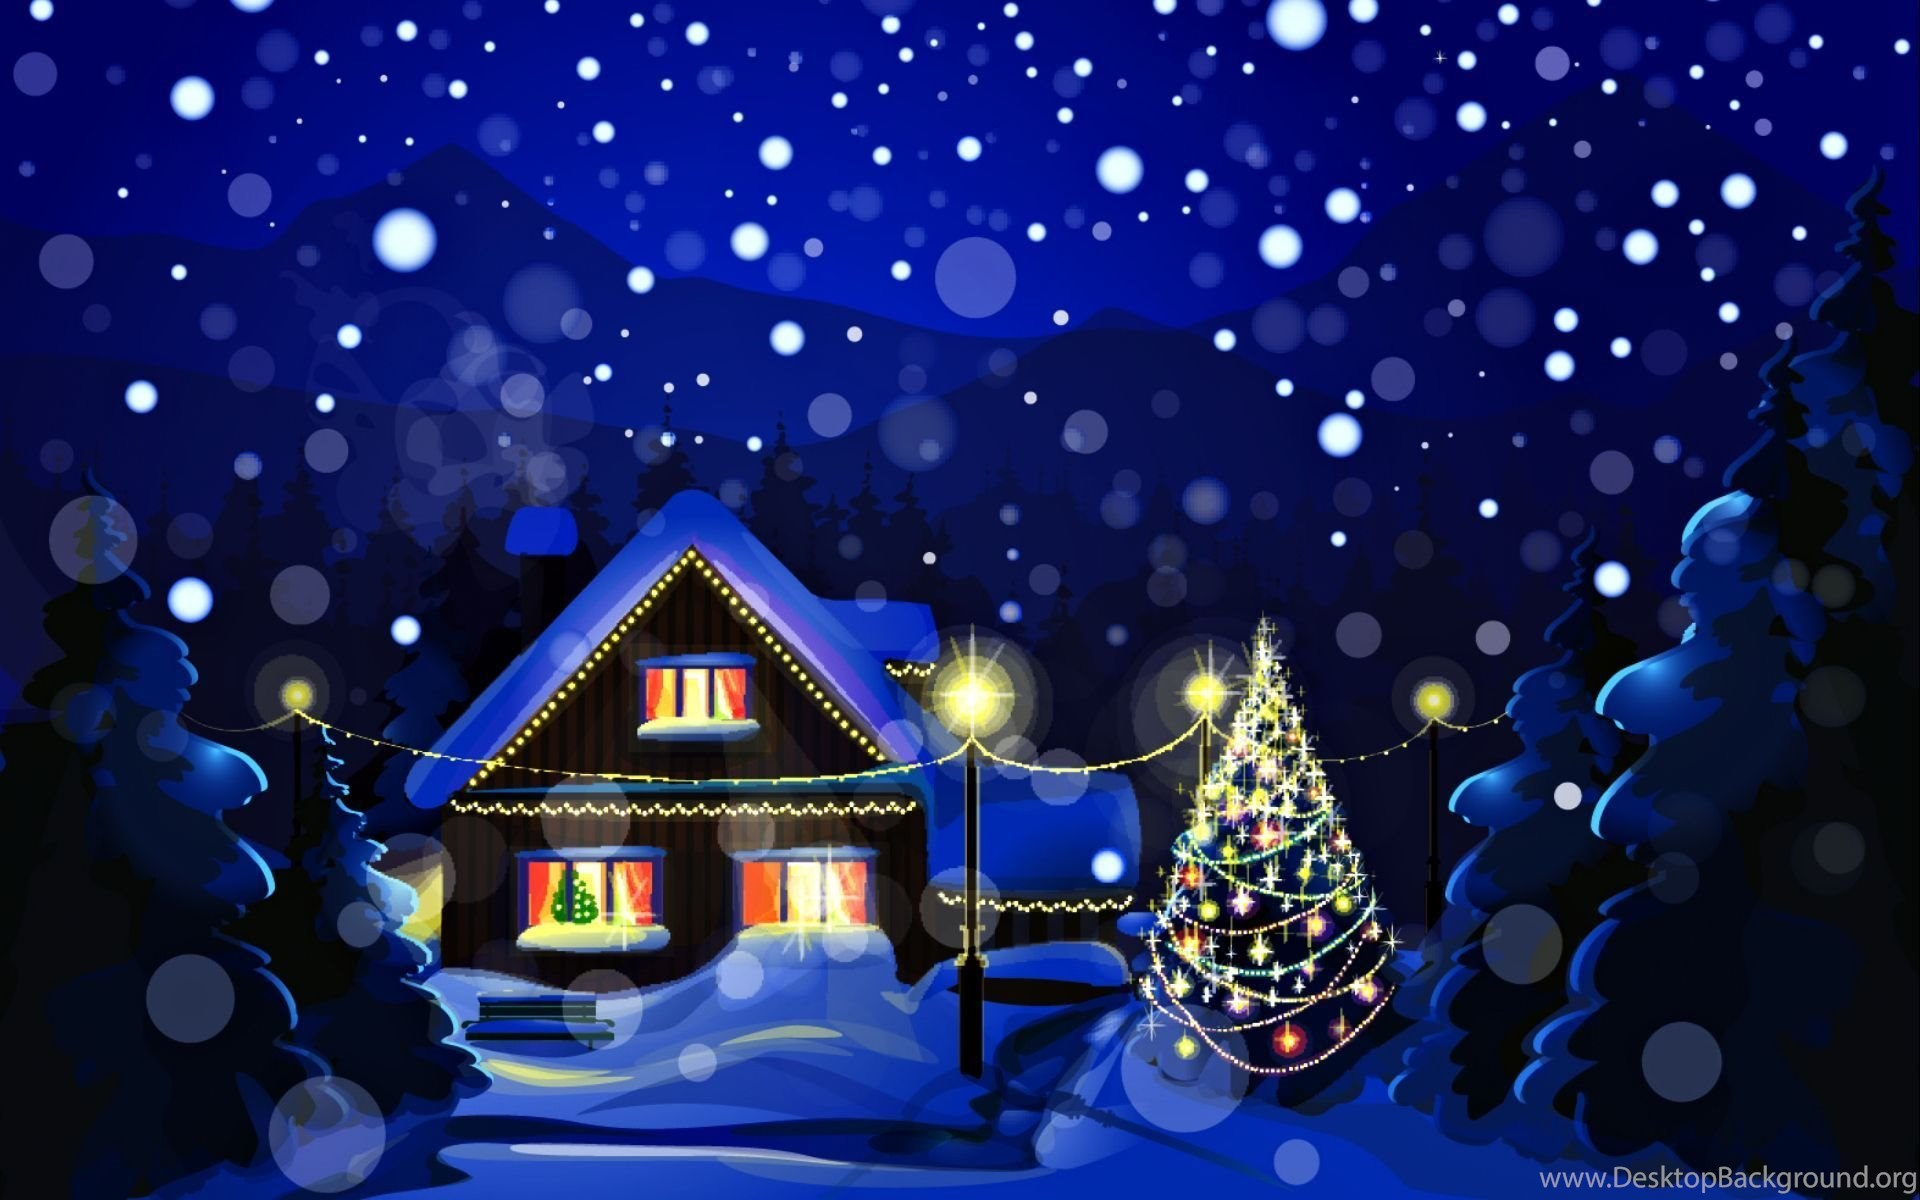 snowy christmas night wallpapers for desktop desktop background